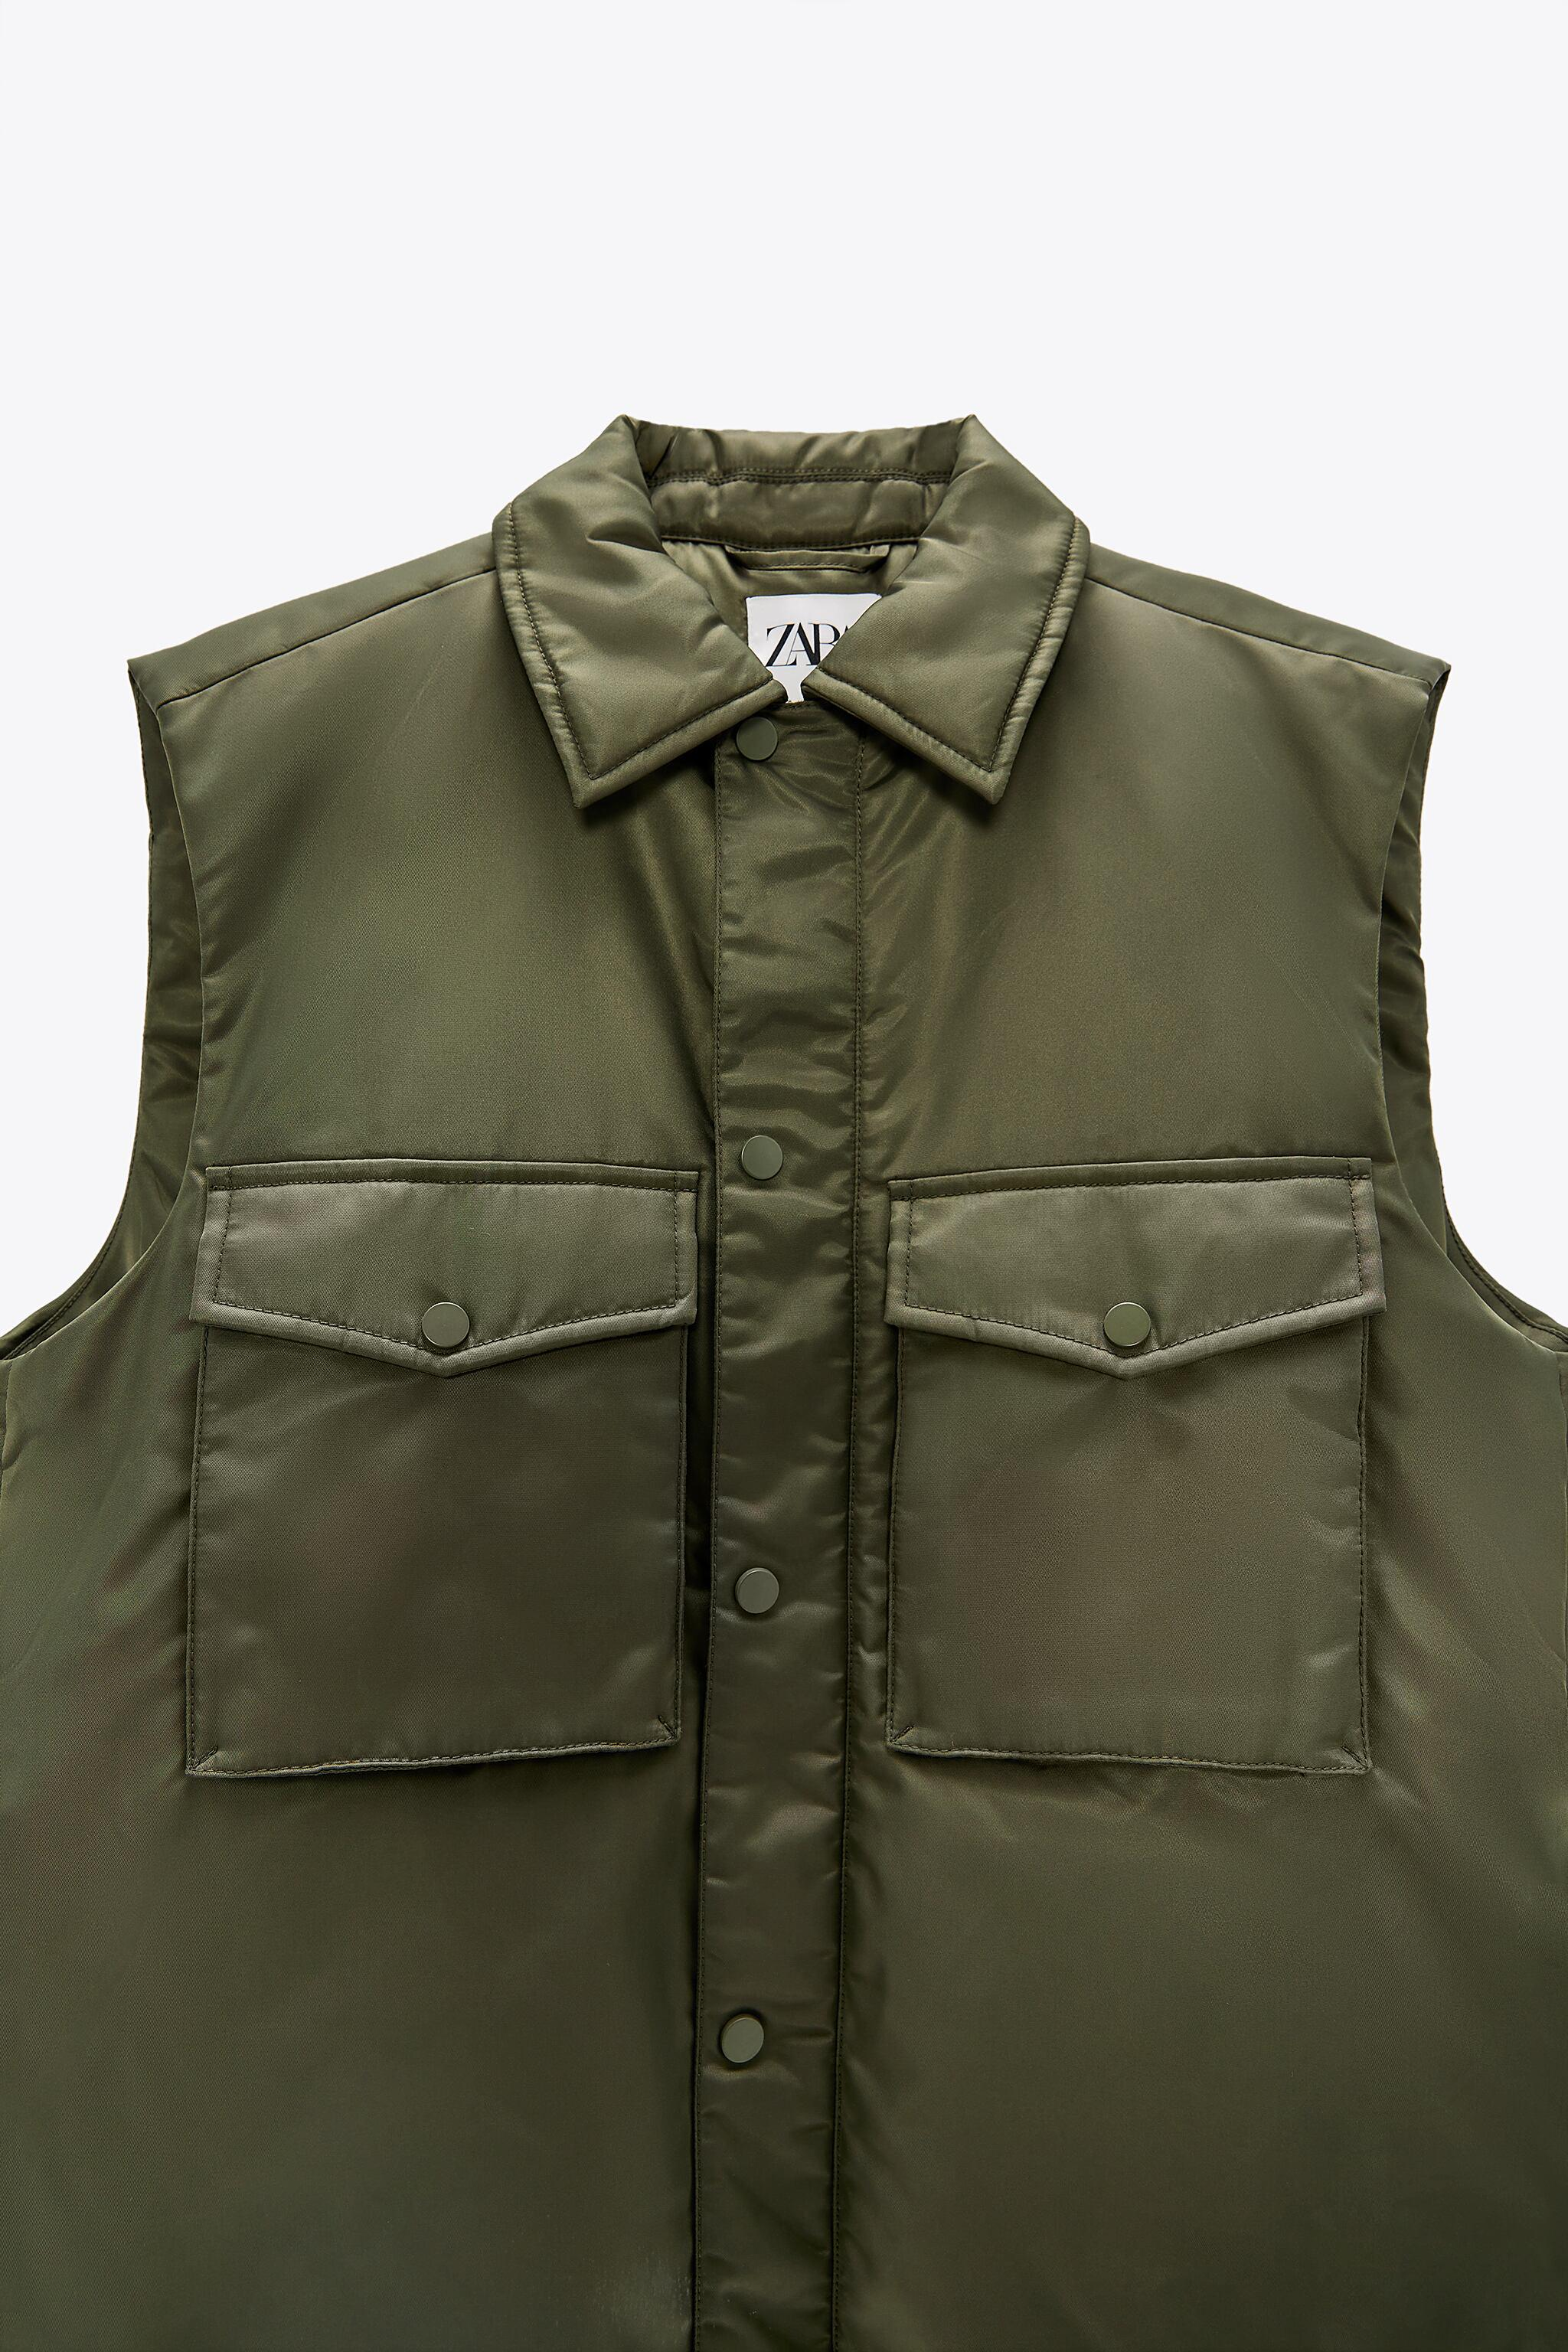 PUFFER VEST LIMITED EDITION 7